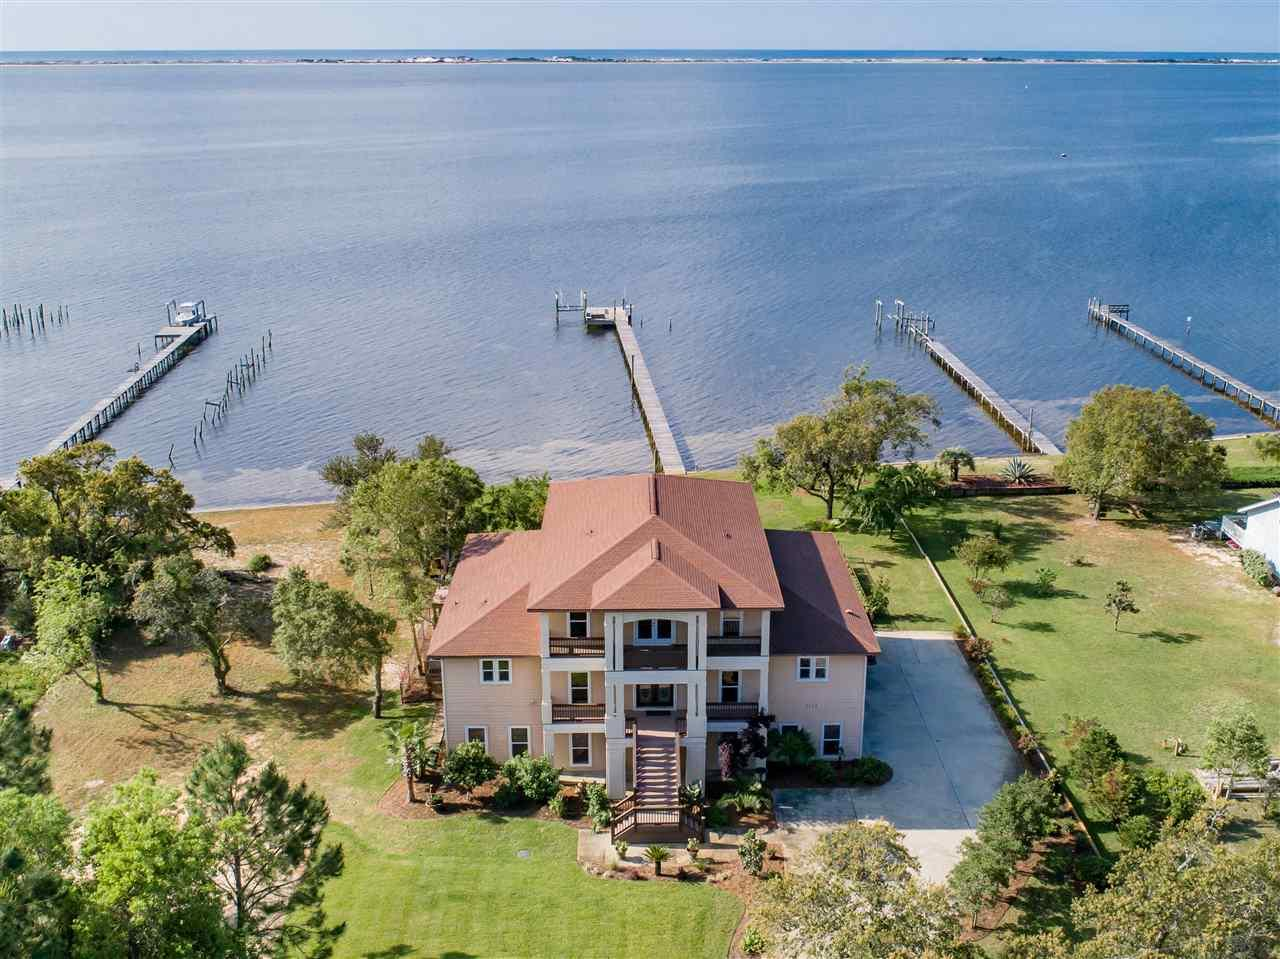 From the impressive exterior of this waterfront manor, the exemplary construction and attention to detail is evident. The well planned, expansive open space, 10' ceilings, 6' impact glass windows and 8' doors with transoms provide generous natural light and dramatic, unobstructed views of the Intracoastal waterway. A deep porch overlooks the resort style gunite pool, dock and water. Inside, woven bamboo floors are gorgeous and complement the wall of custom cabinetry housing the surround sound audio/visual system. An eye-catching two sided gas fireplace is a focal point for both living and dining area. The large dining space opens to the huge chef's kitchen with Italian travertine tile and granite counters is the heart of this home. Unbelievable storage, deep drawers for dishes/pots, tall cabinetry, a coffee nook, ice maker, wine/beverage cooler, corner cabinet with pre wired outlets, and two sinks are highlighted by an immense black granite island providing prep space, storage and seating. Upscale appliances include a 6 burner Dacor gas stove top, Bosch dishwasher, pot filler, KitchenAid refrigerator, built in oven and warming drawer. The large pantry/office has extensive  storage, a refrigerator and a built-in desk. The master bedroom has an amazing water view, sitting area, and an oversized master bath with Italian travertine, granite counters, a walk-in shower with bench and jacuzzi tub. Also, a huge walk-in closet accesses the oversized laundry room. Upstairs, note the 3 sizable bedrooms with large closets and the 2 full baths. Two bedrooms overlook a 2nd large porch viewing south. Ground level features a 3 car garage and cooled bonus room with full bath/kitchenette. It's entertainment ready and just steps from the pool area as well as the new 2018 dock that features lifts for a 10,000 lb boat and a jet ski and green lights for night time fishing. Elevator ready, this space is currently two large closets.! This fabulous custom coastal home is ready for you!!